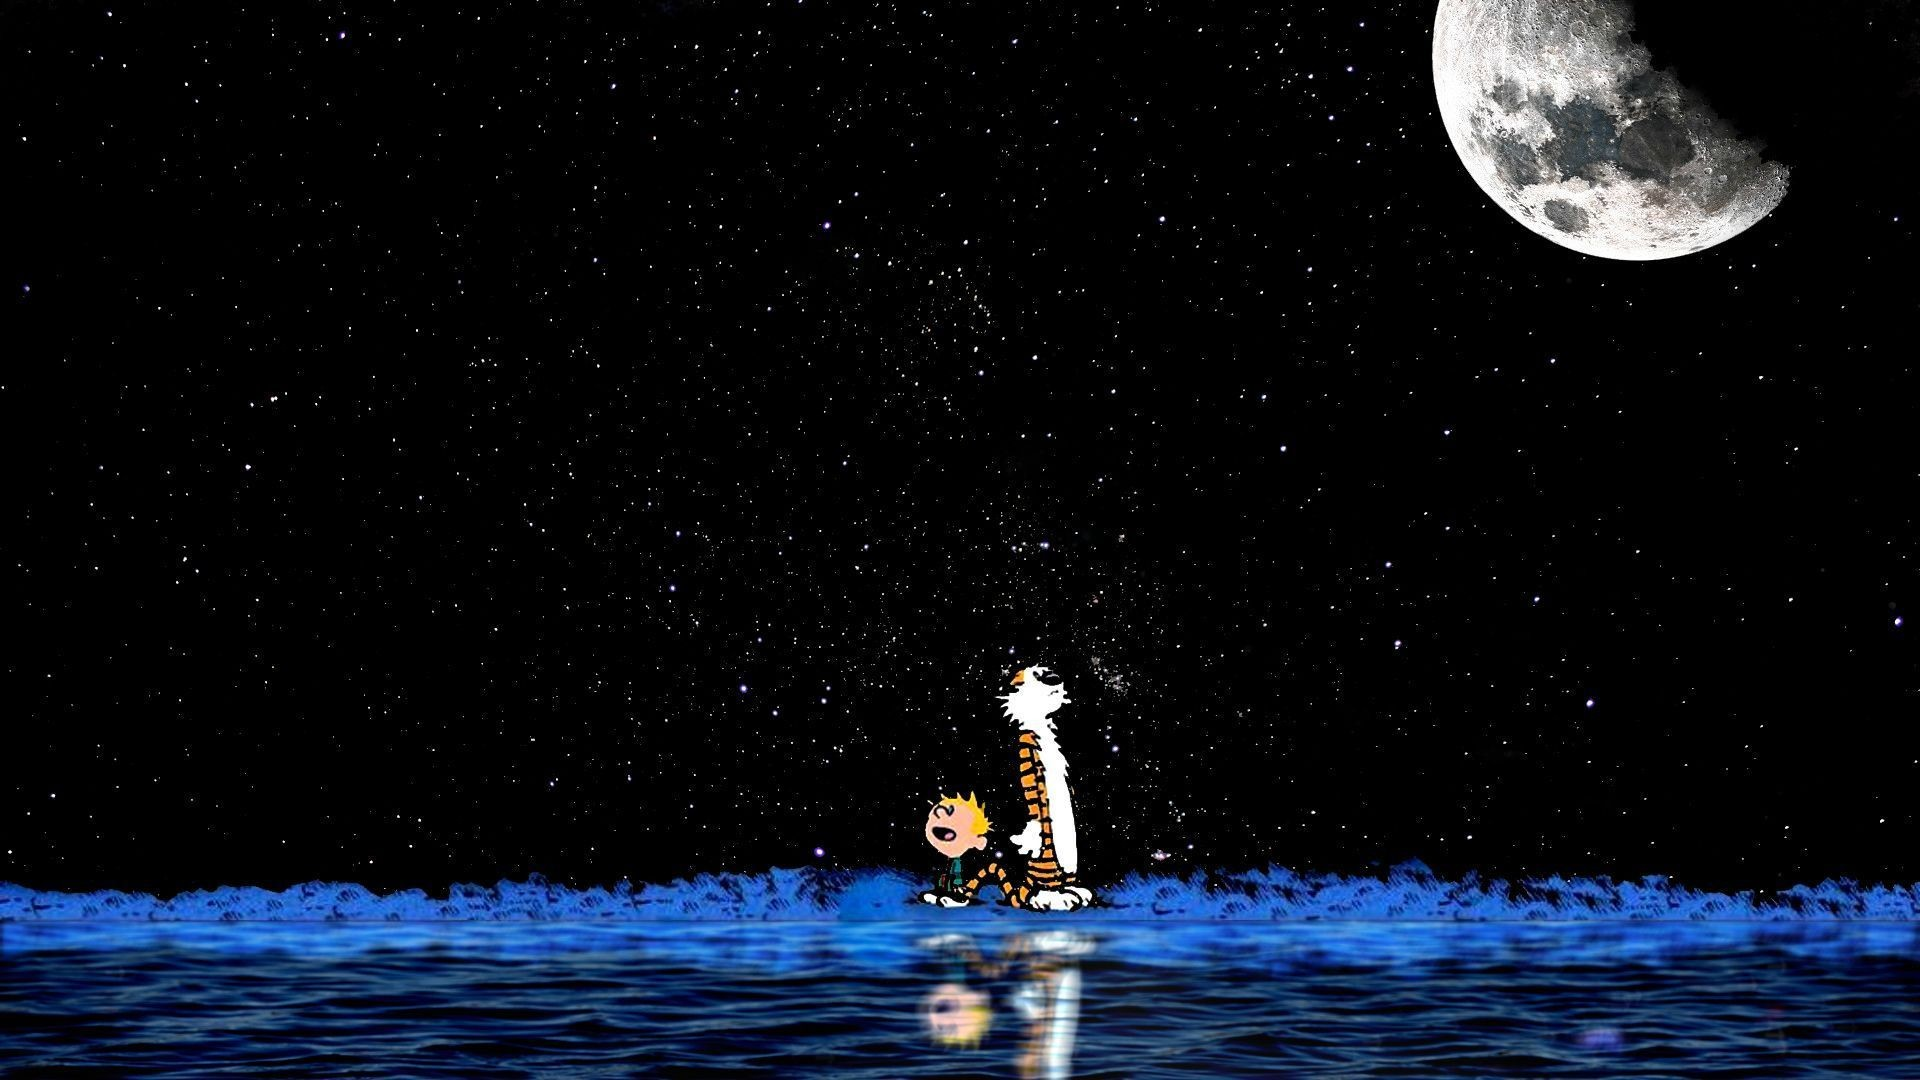 Quick edit on an old Calvin and Hobbes favorite [.